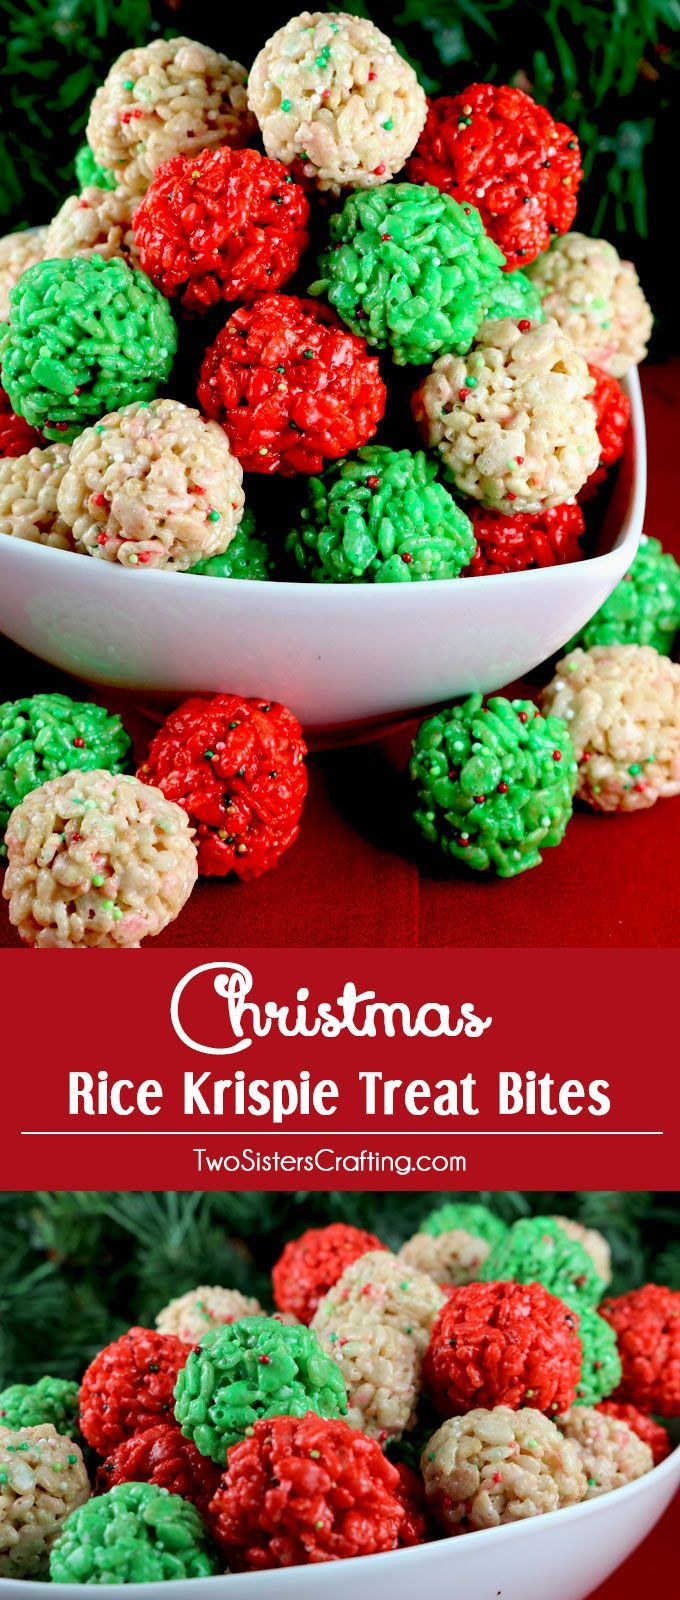 Christmas Colored Rice Krispie Treats With Treat Bites Pinterest